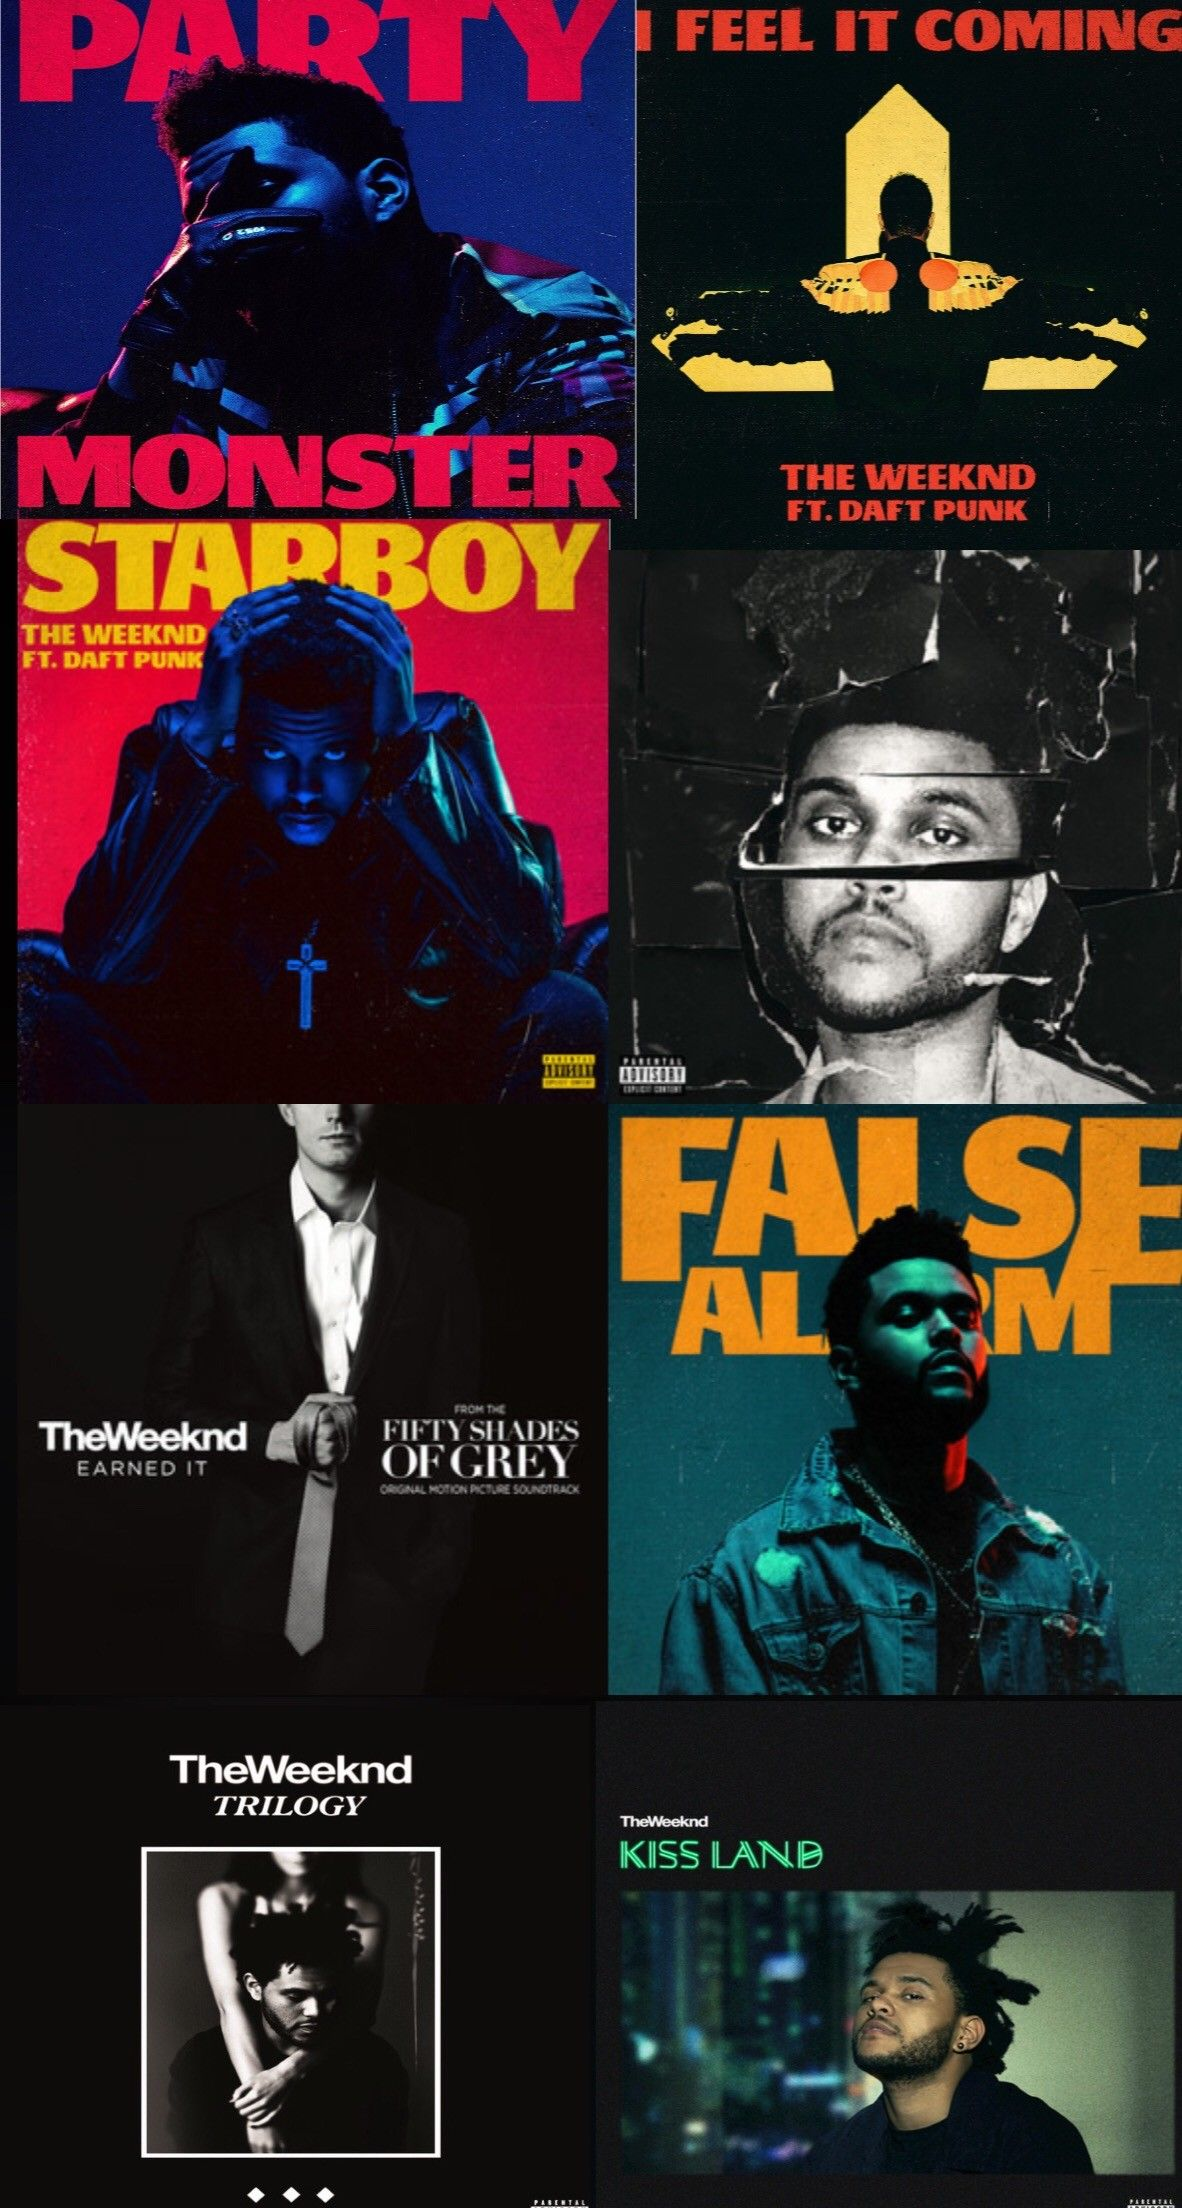 1280x1280 The Weeknd Wallpaper Group With 40 Items